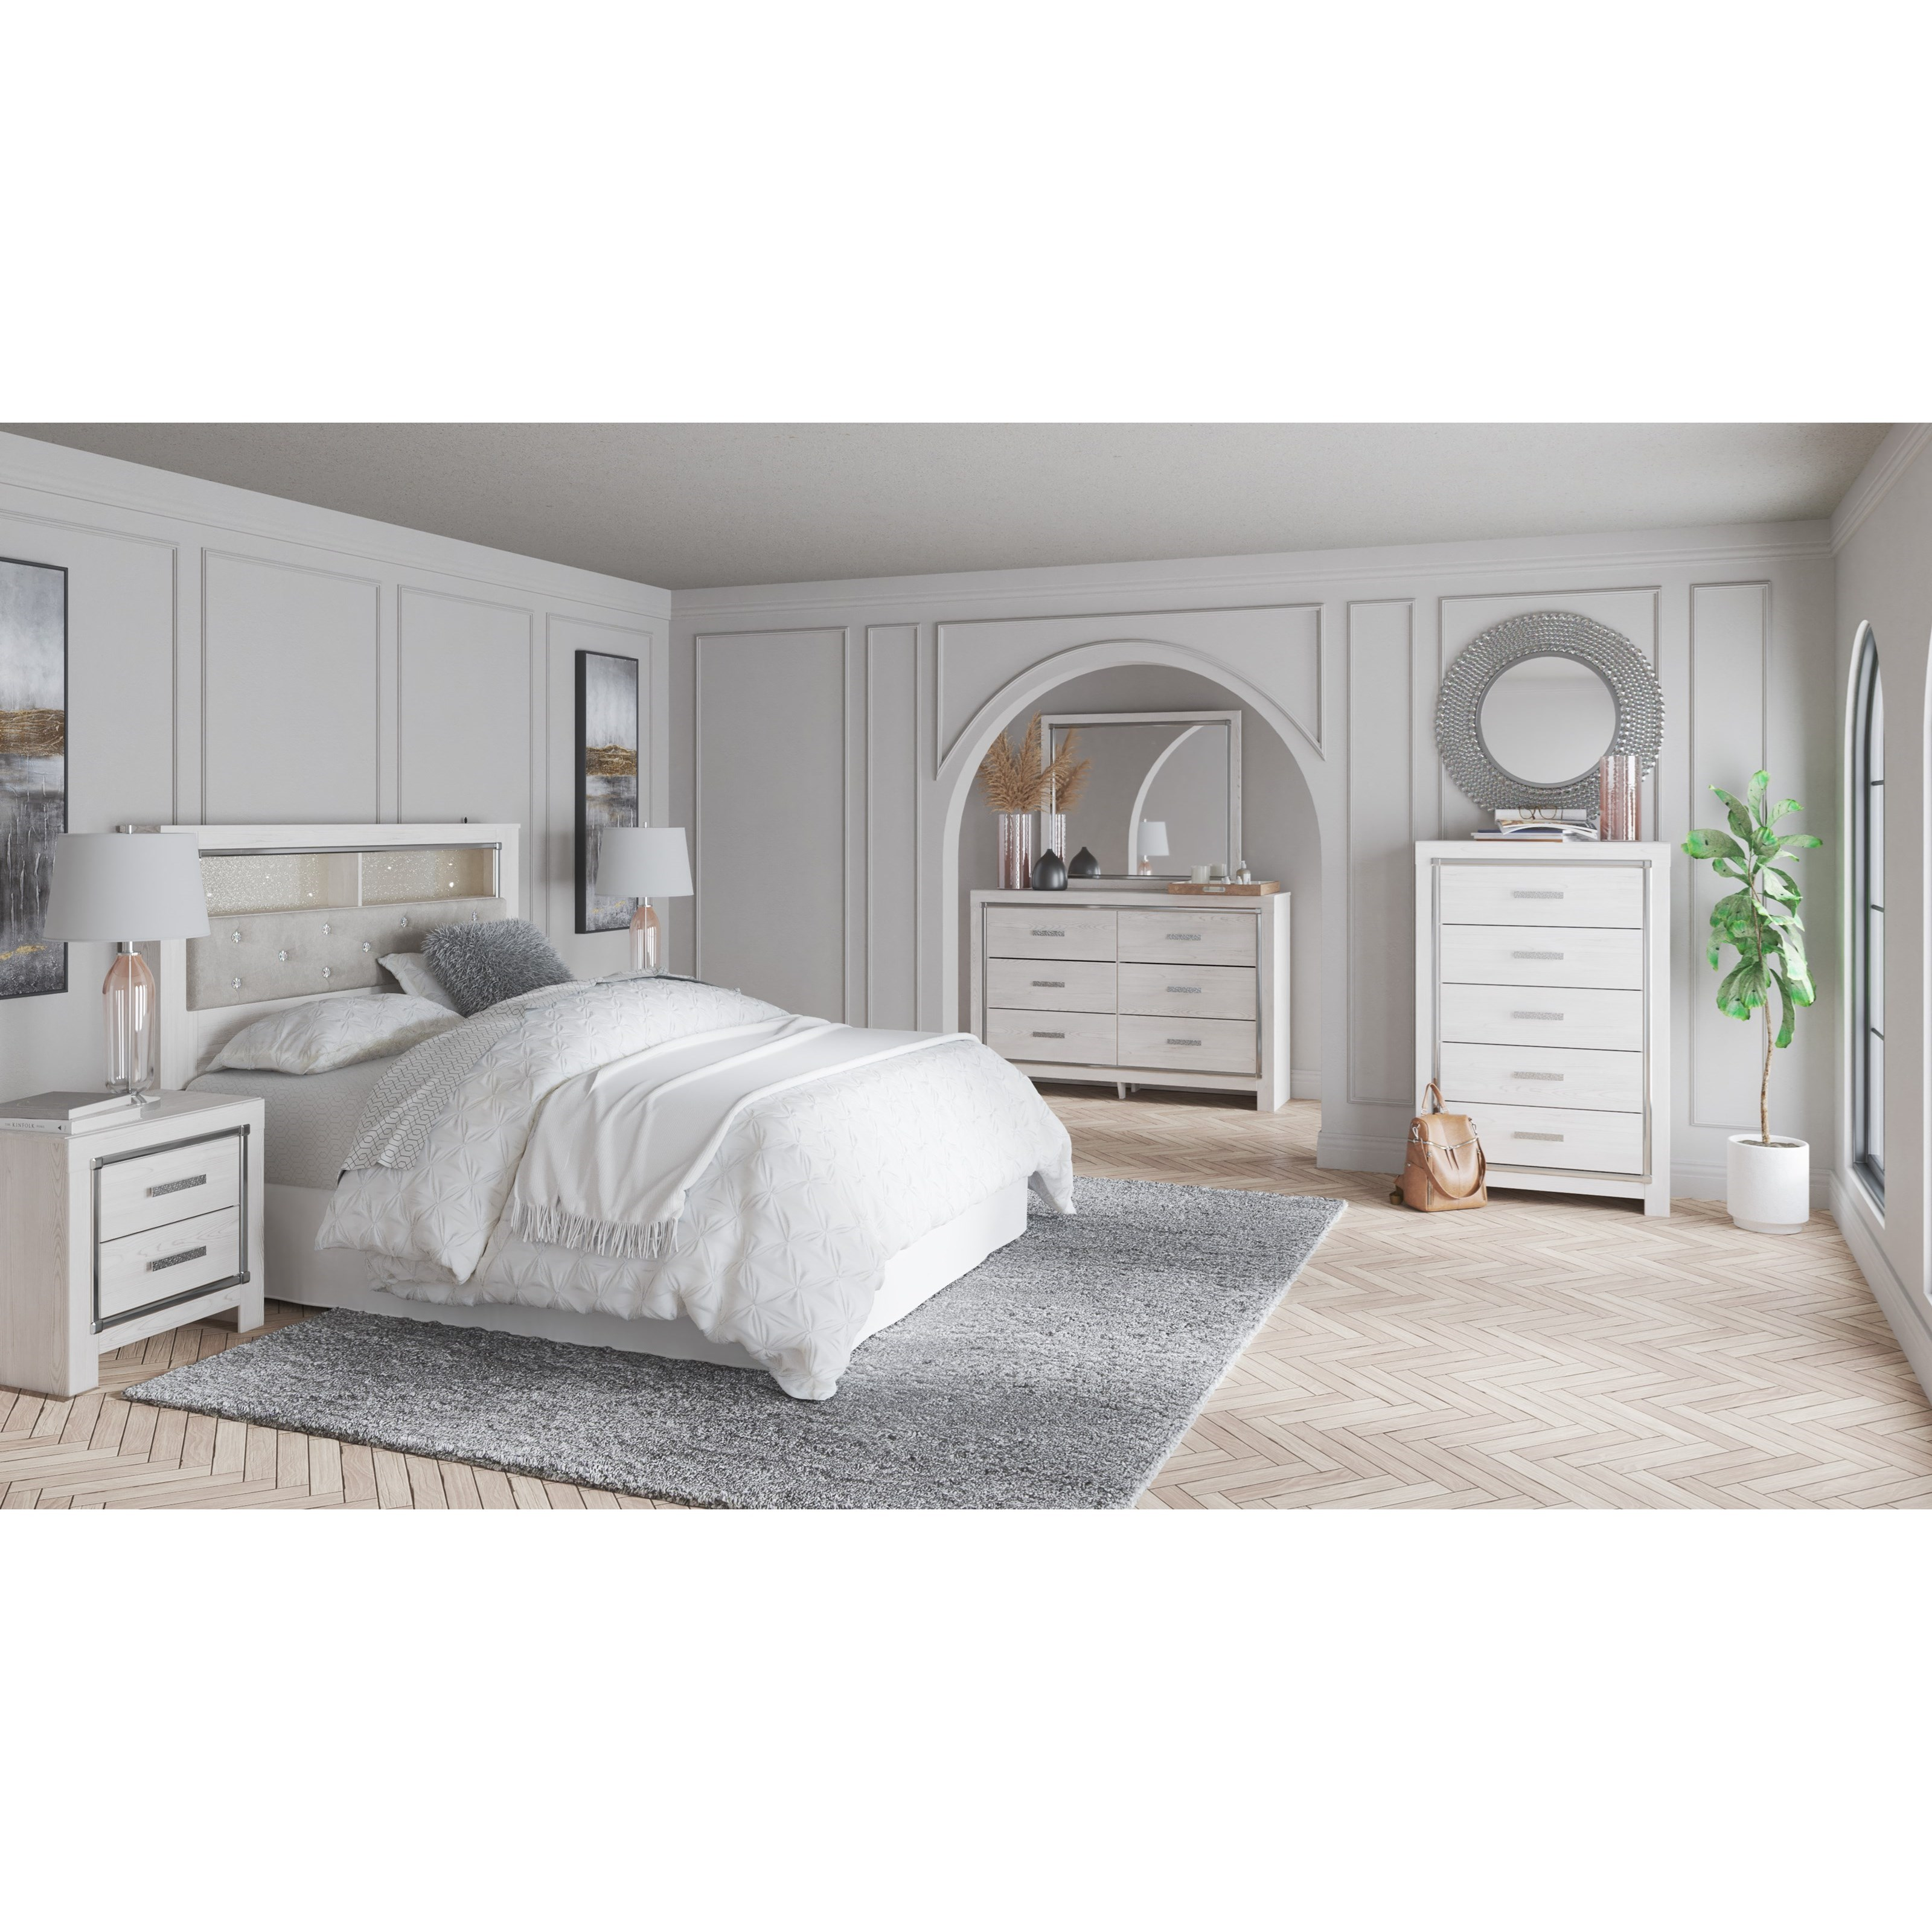 Altyra Queen Bedroom Group by Signature Design by Ashley at Household Furniture